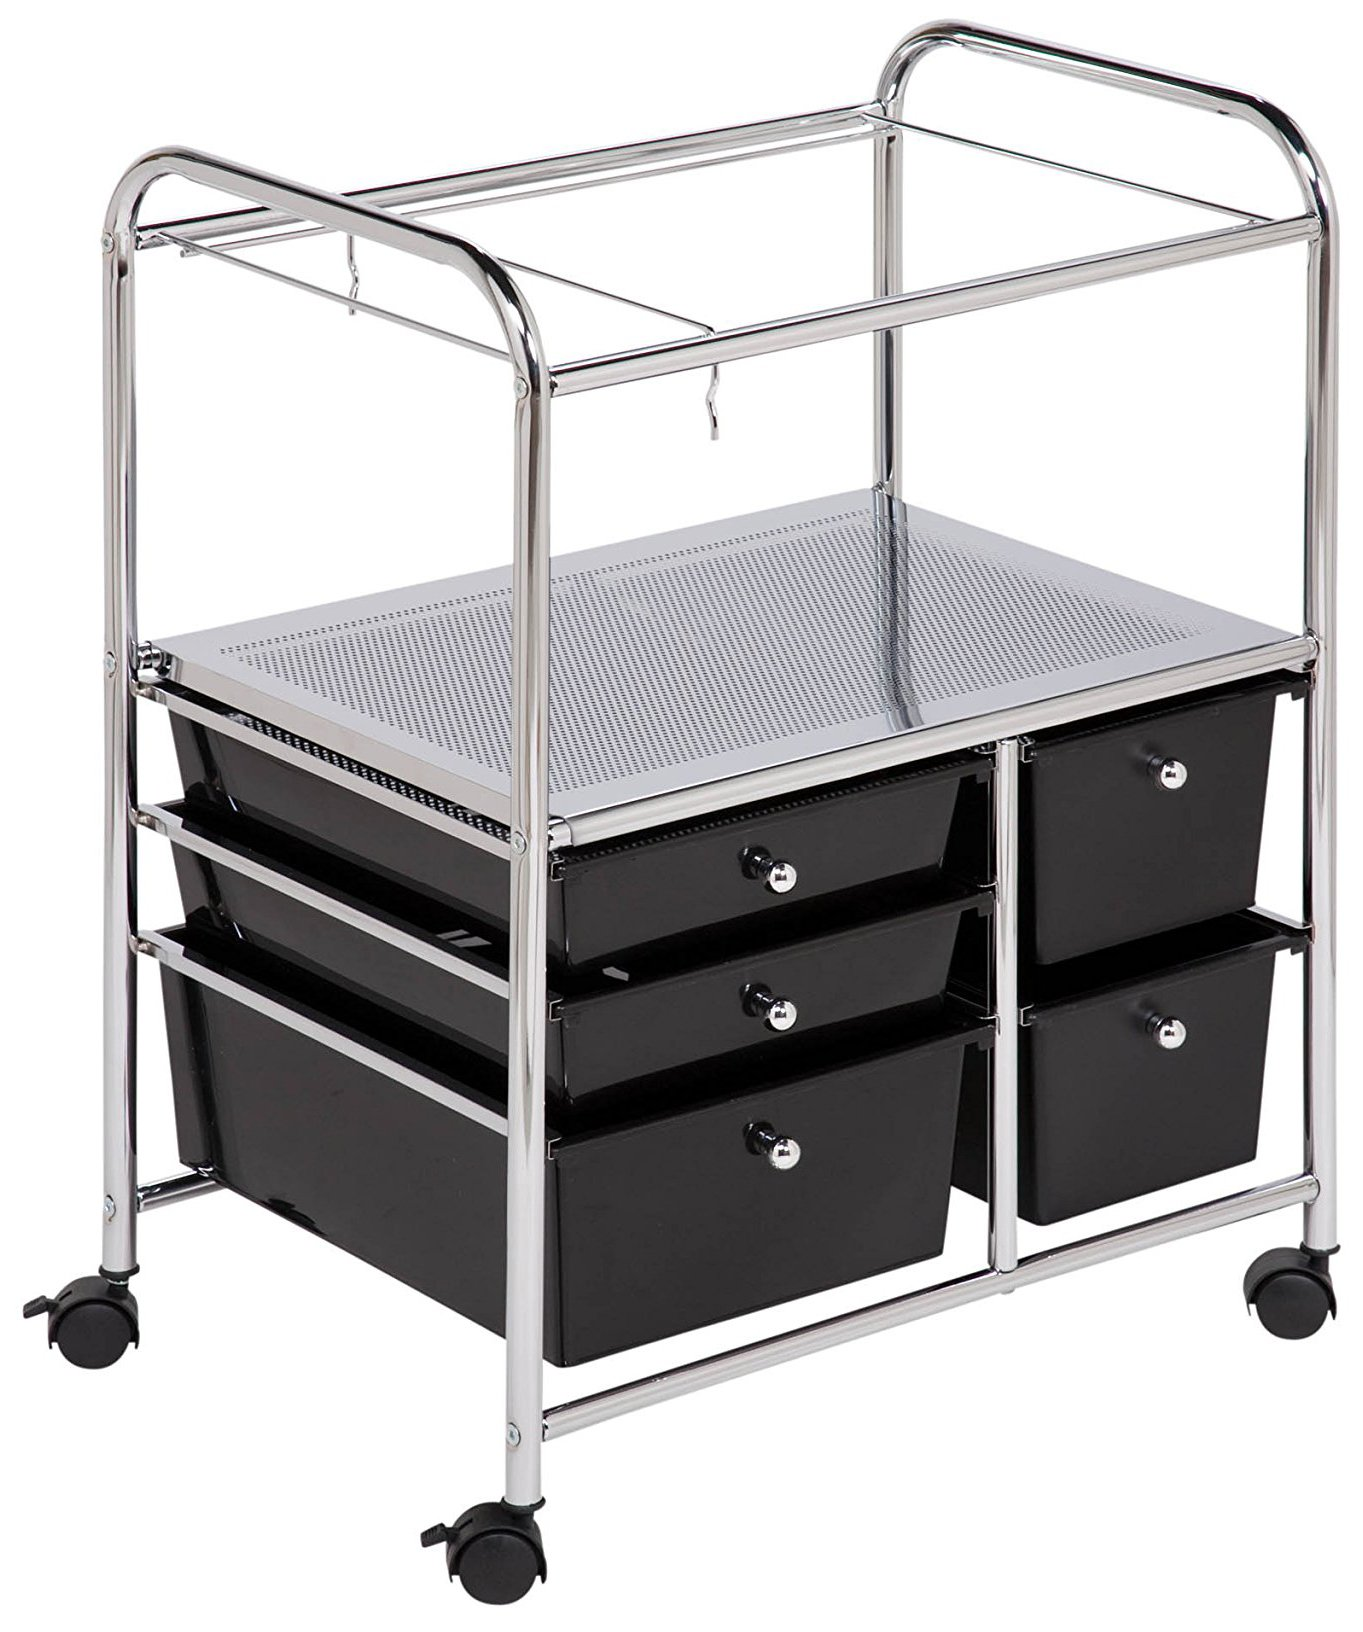 Honey-Can-Do CRT-01512 5-Drawer Hanging File Cart by Honey-Can-Do